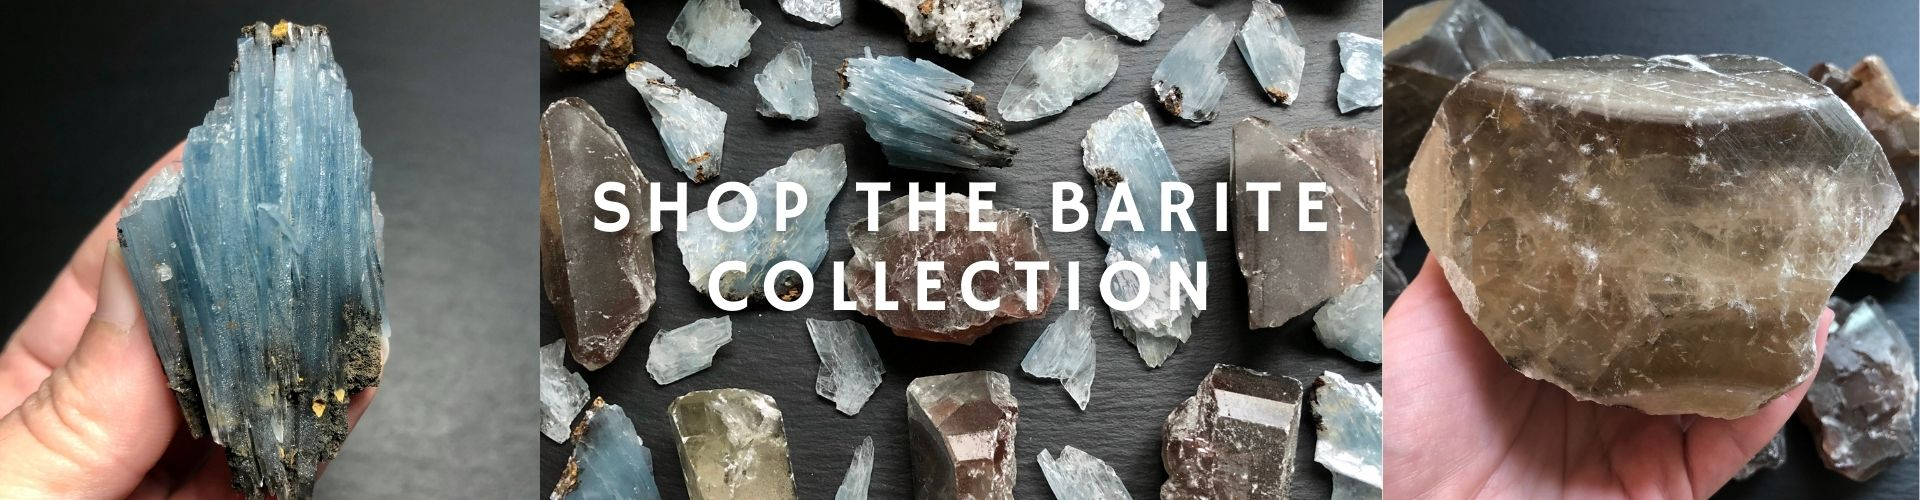 Shop The Barite collection